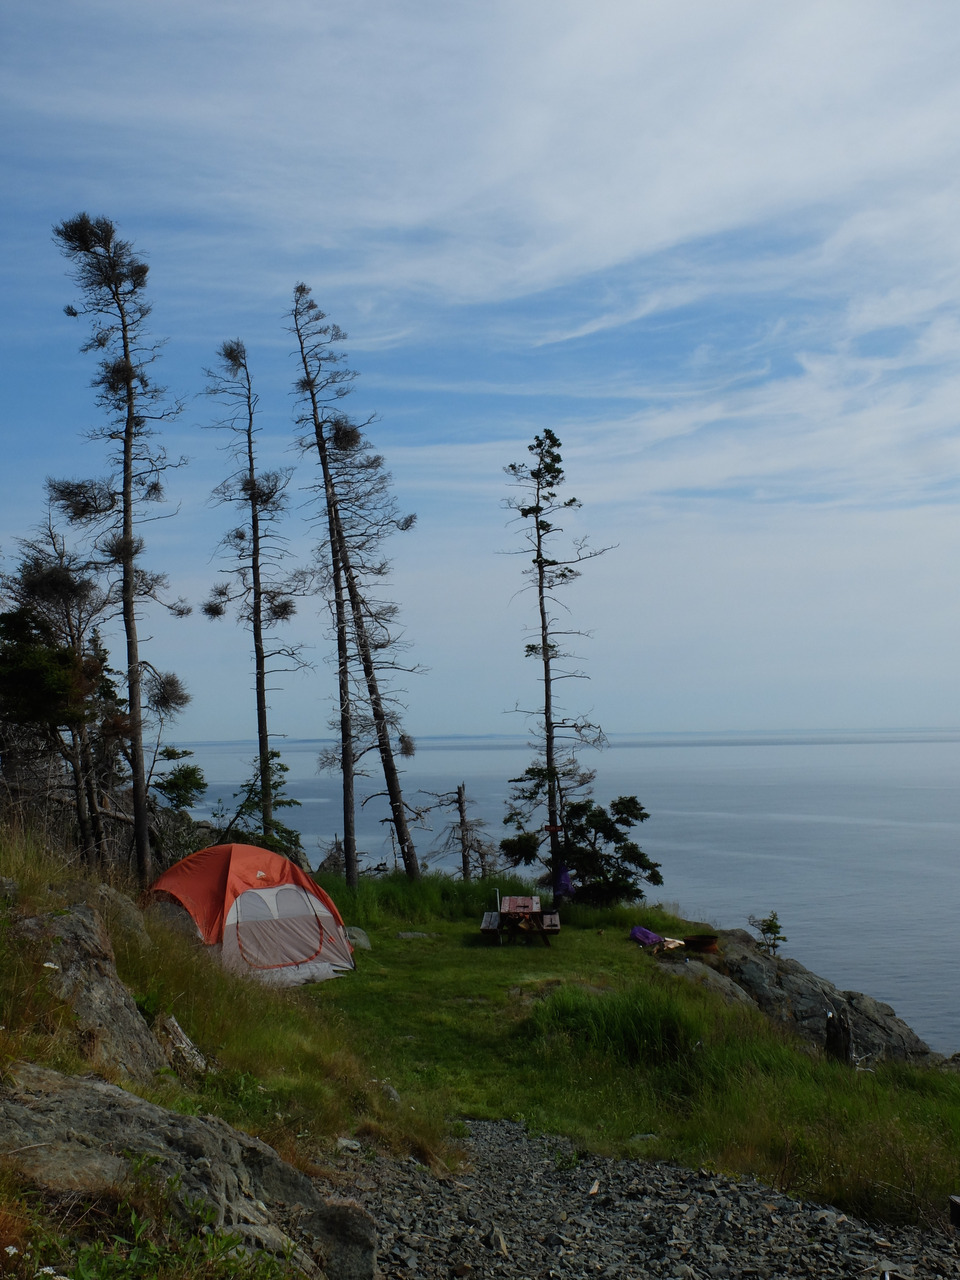 mangia minga // Travels: Grand Manan, New Brunswick. Cliff edge sites at Hole in the Wall campground